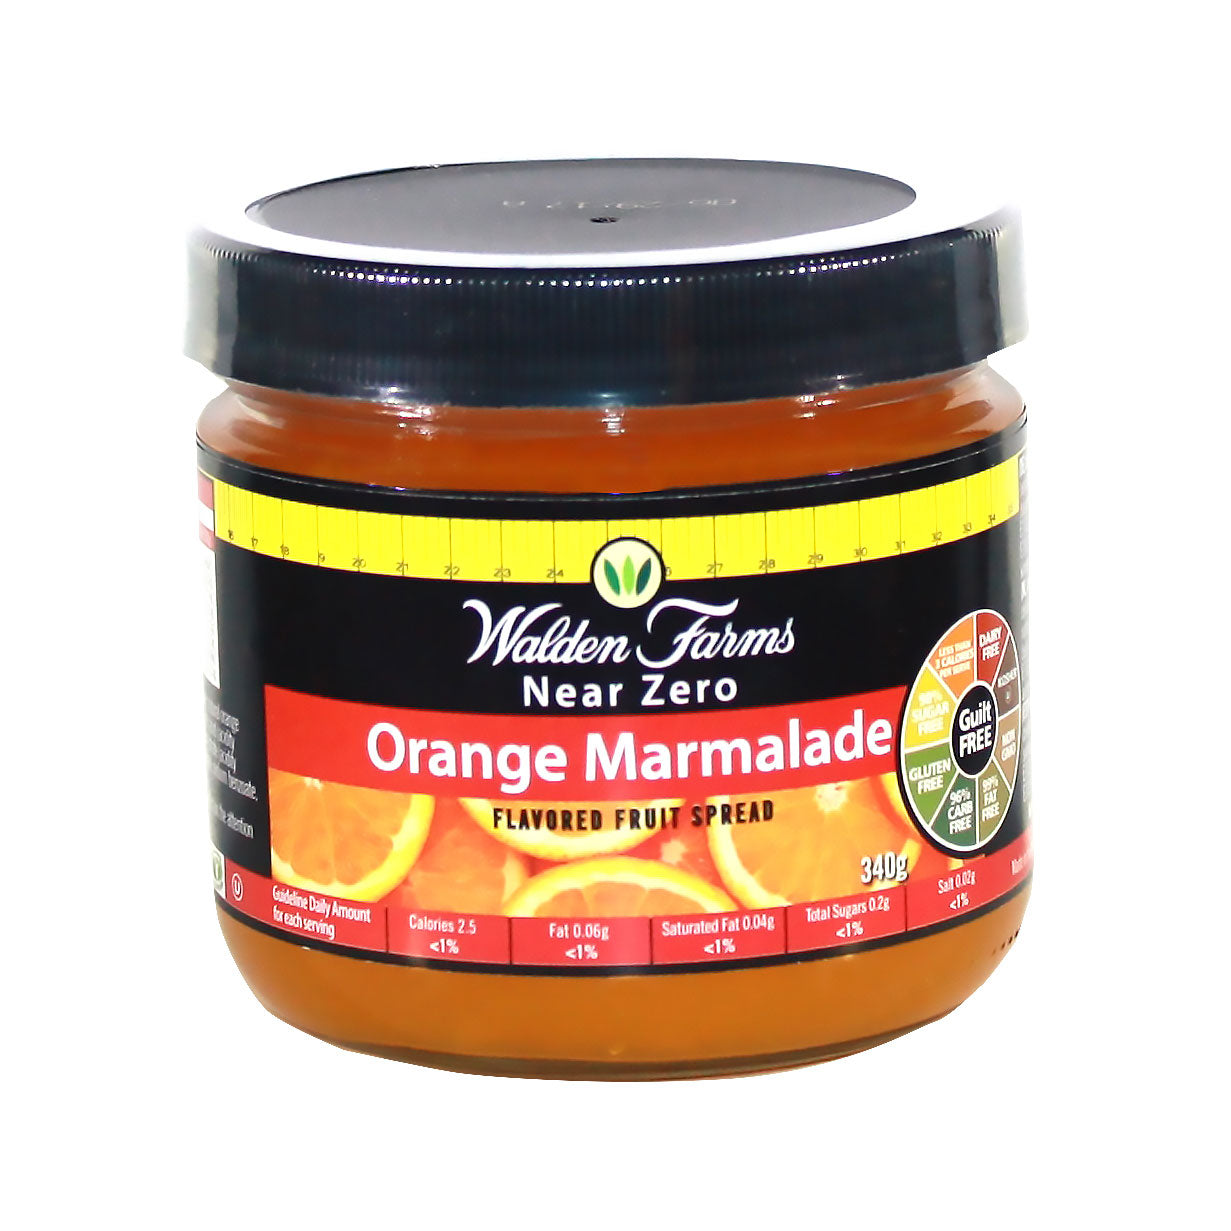 Dairy Free Vegan Orange Marmalade with Near Zero Calories, Fat & Sugar